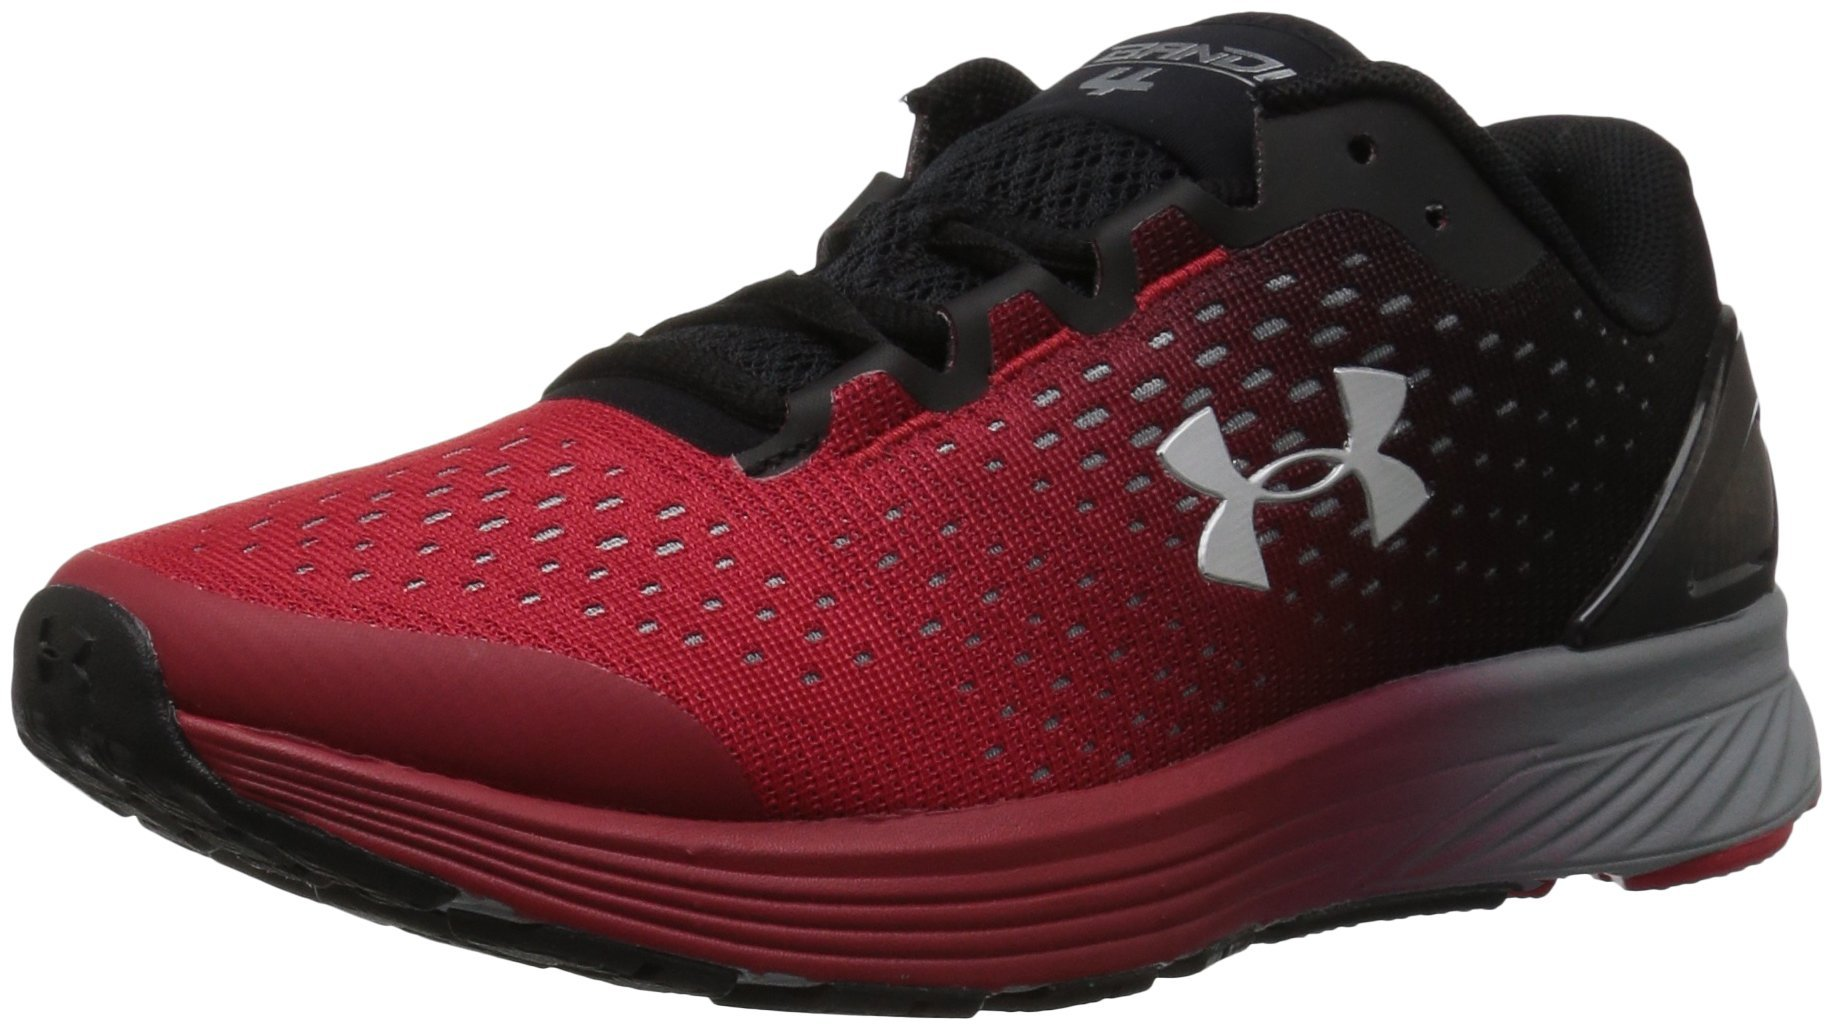 Under Armour Boys' Grade School Charged Bandit 4 Sneaker, Red (602)/Black, 4.5